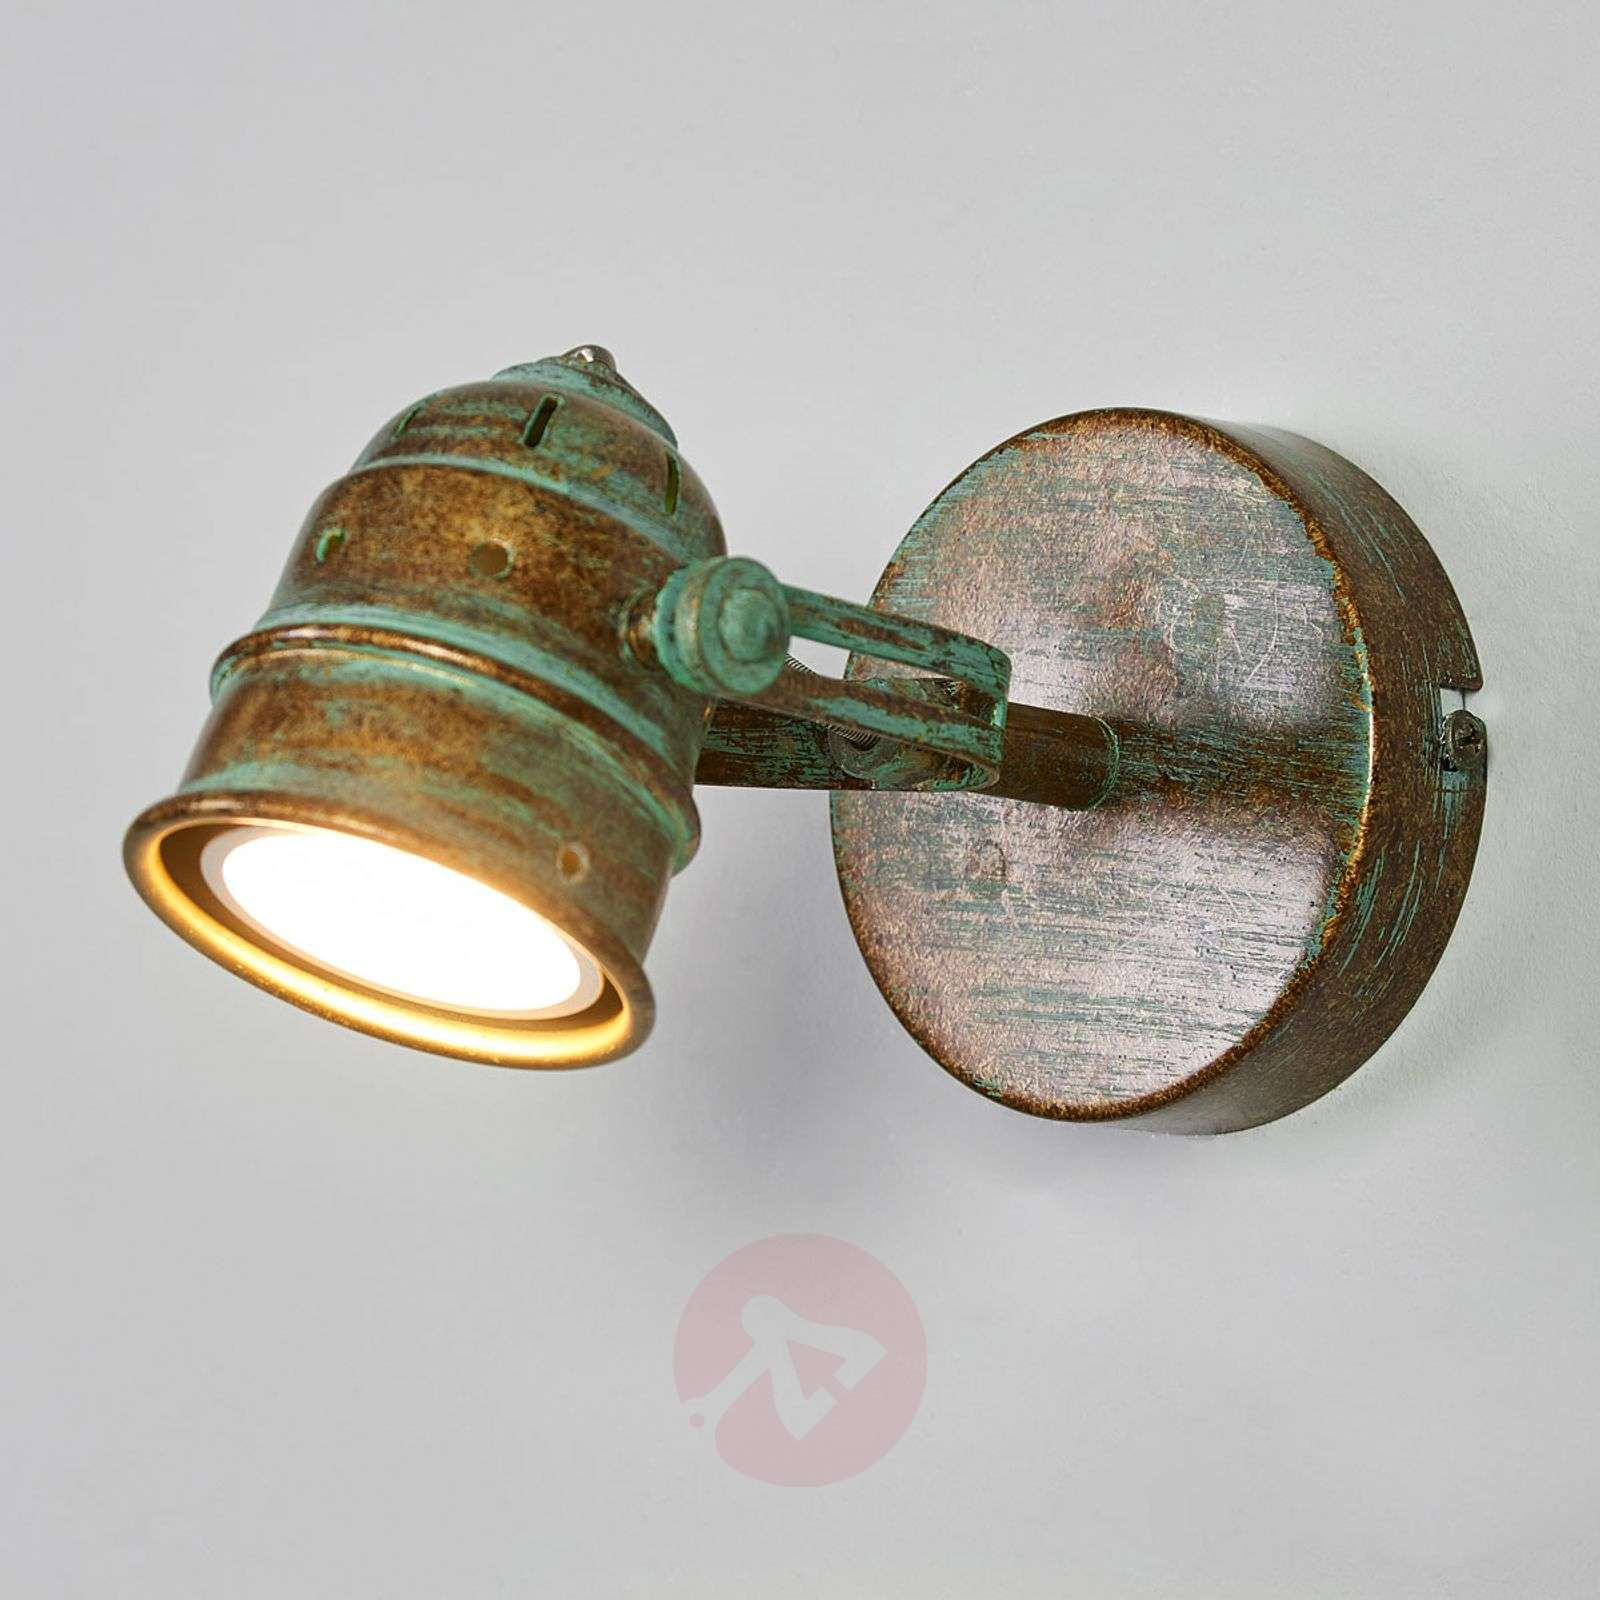 Leonor LED spotlight with verdigris effect-9639069-01